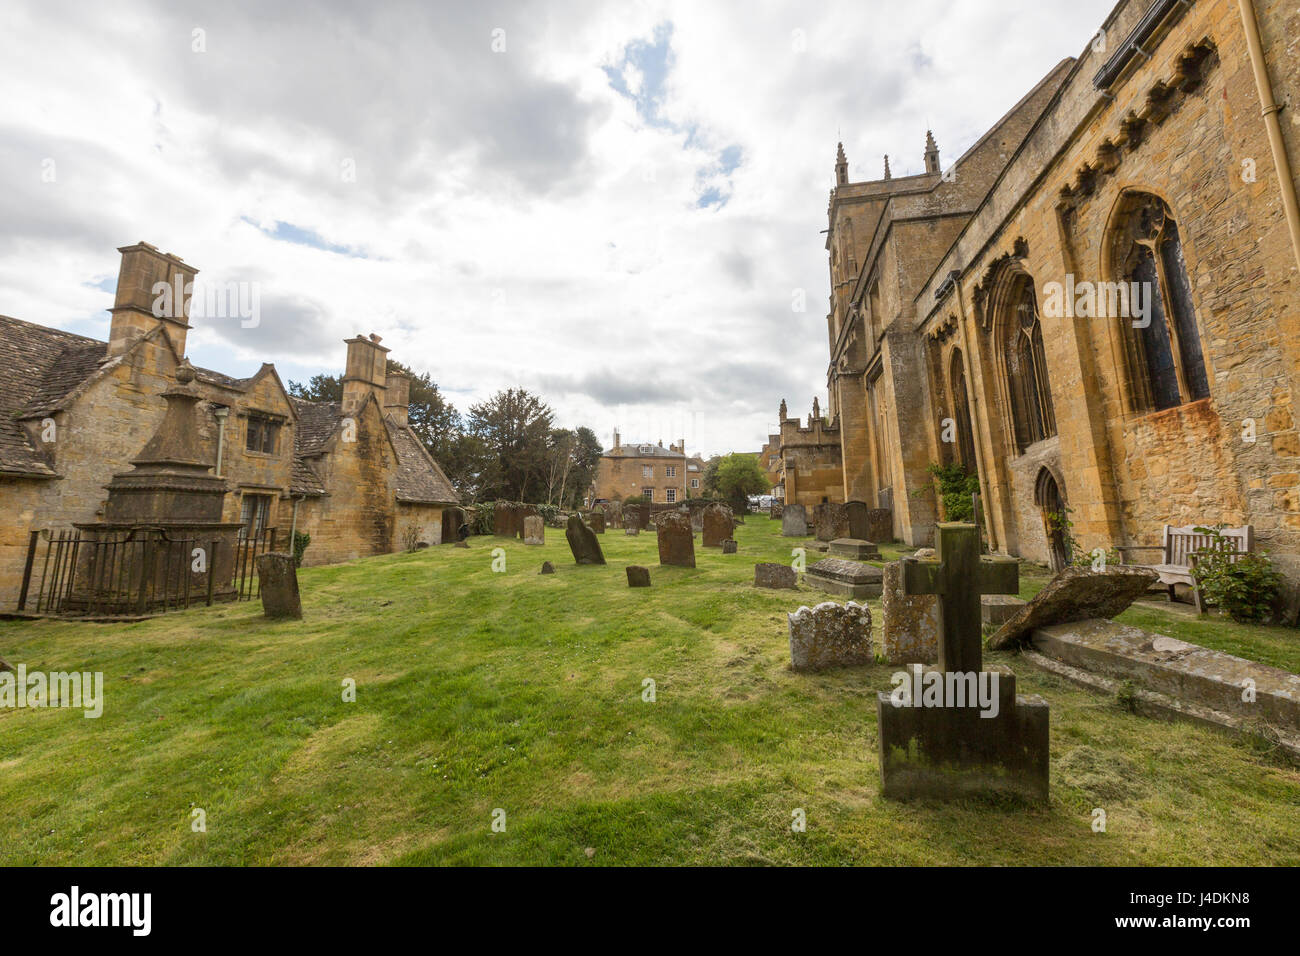 Saints' Peter and Paul Church and graveyard at Blockley,  Cotswold district of Gloucestershire, England, UK - Stock Image